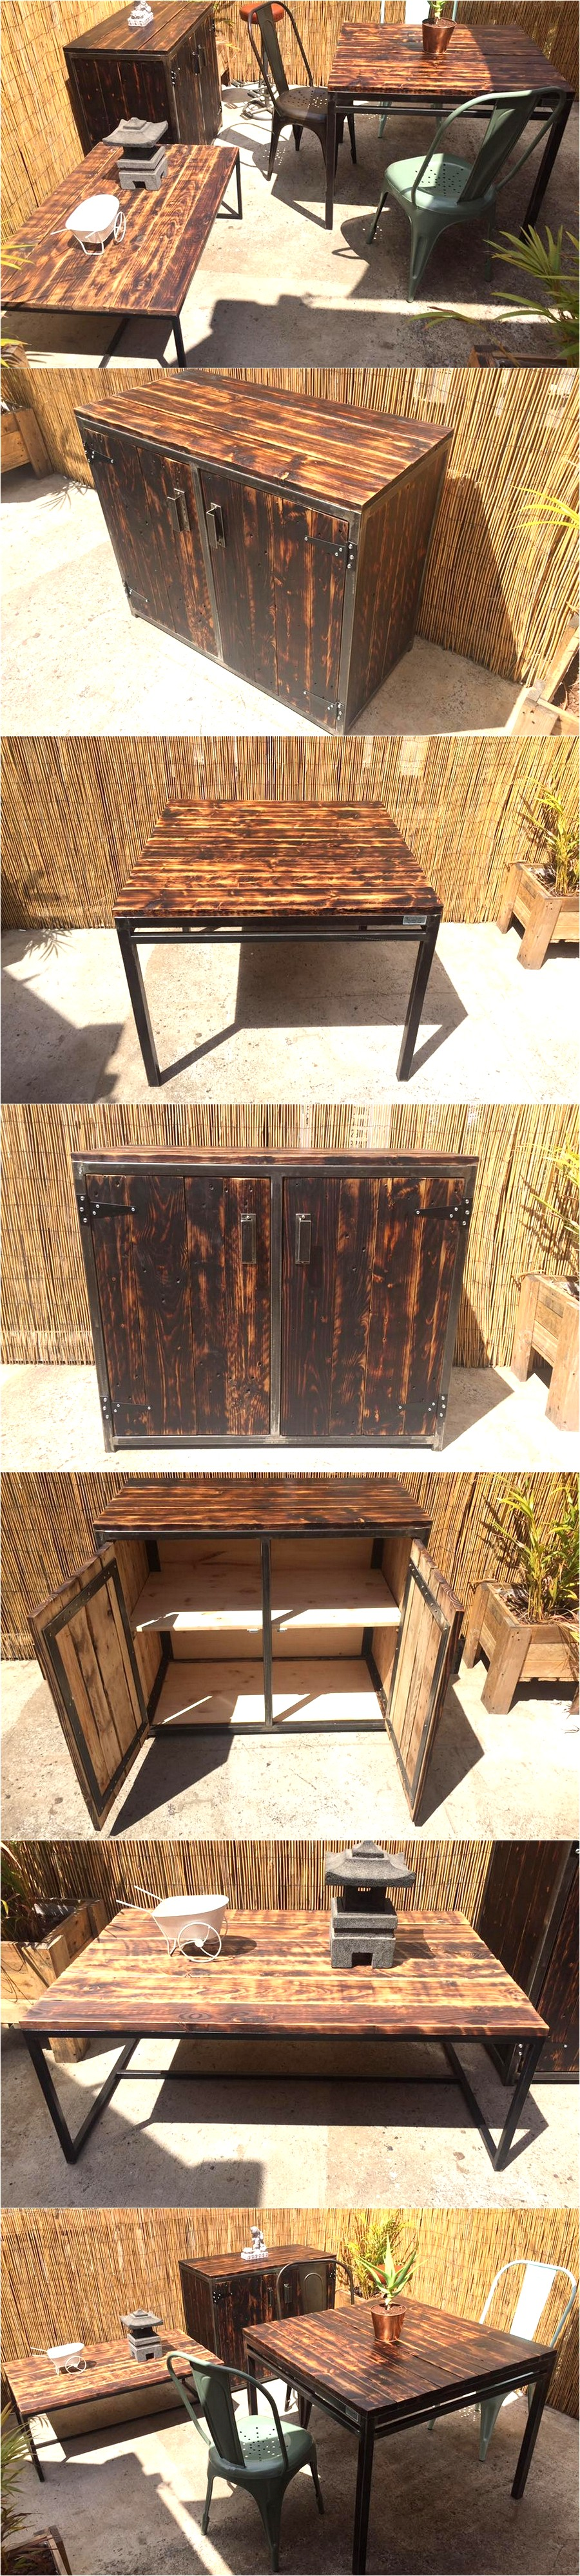 reclaimed-wood-pallet-outdoor-furniture-set